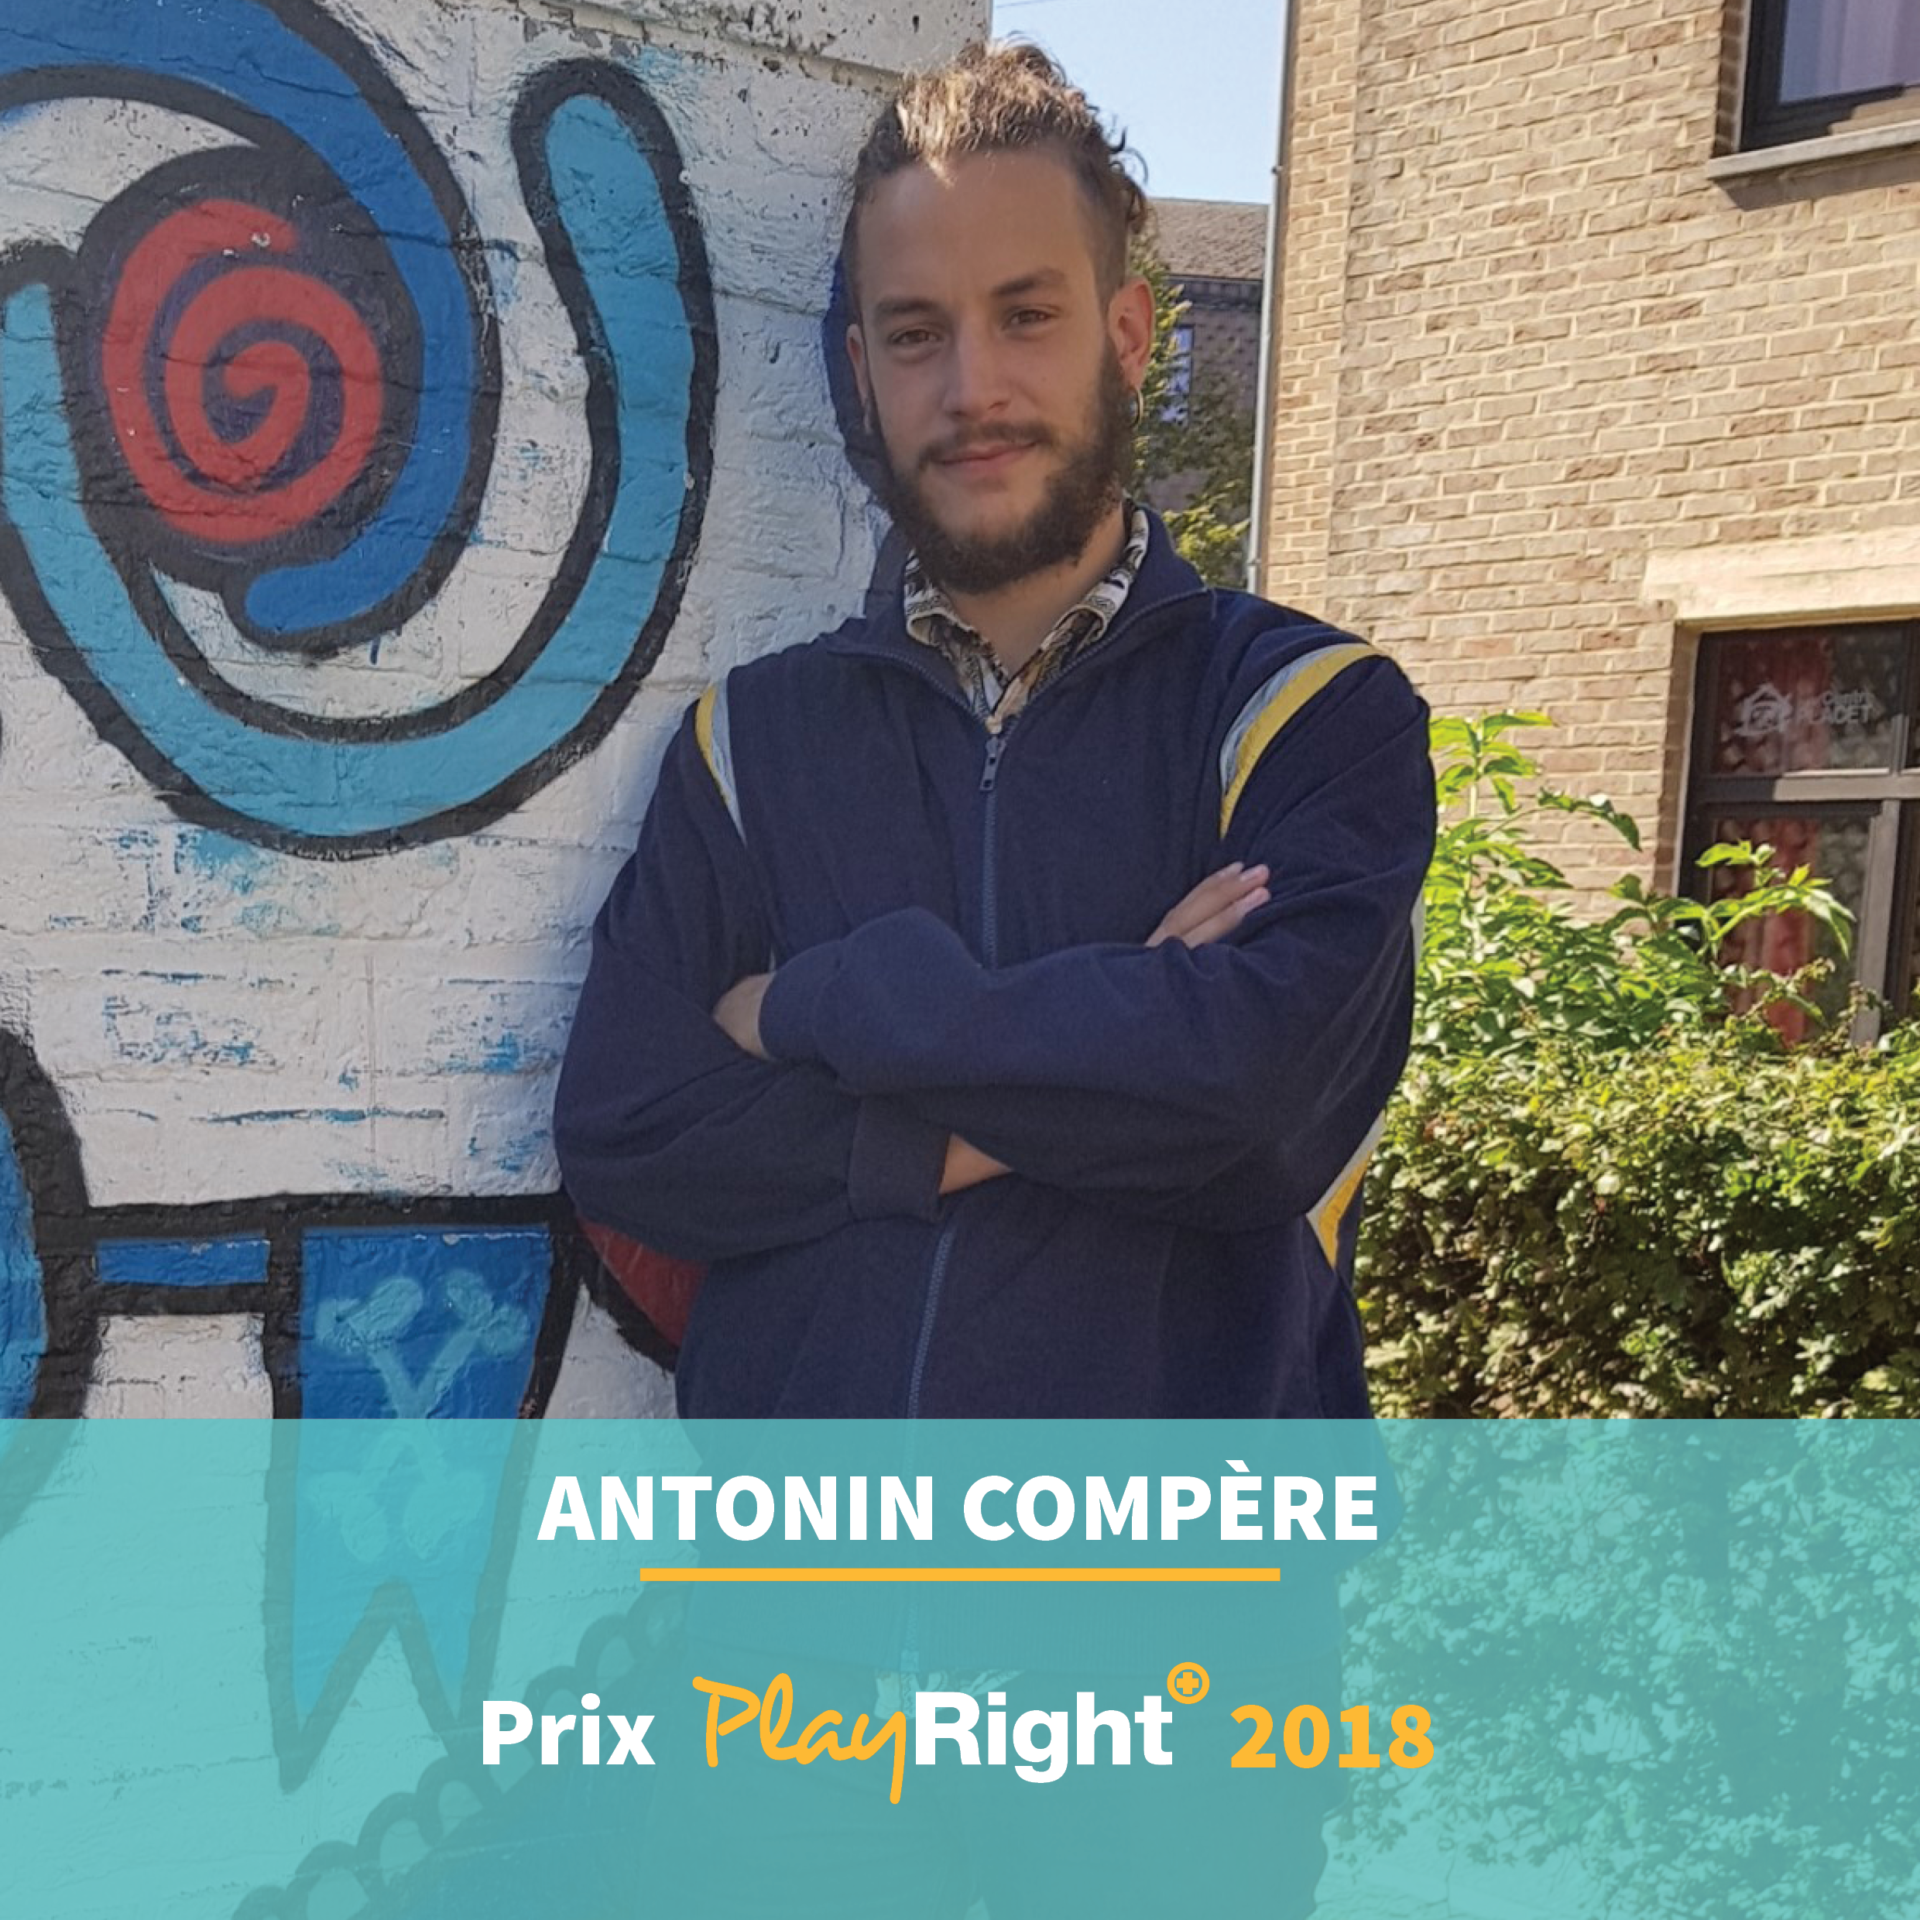 Antonin Compere